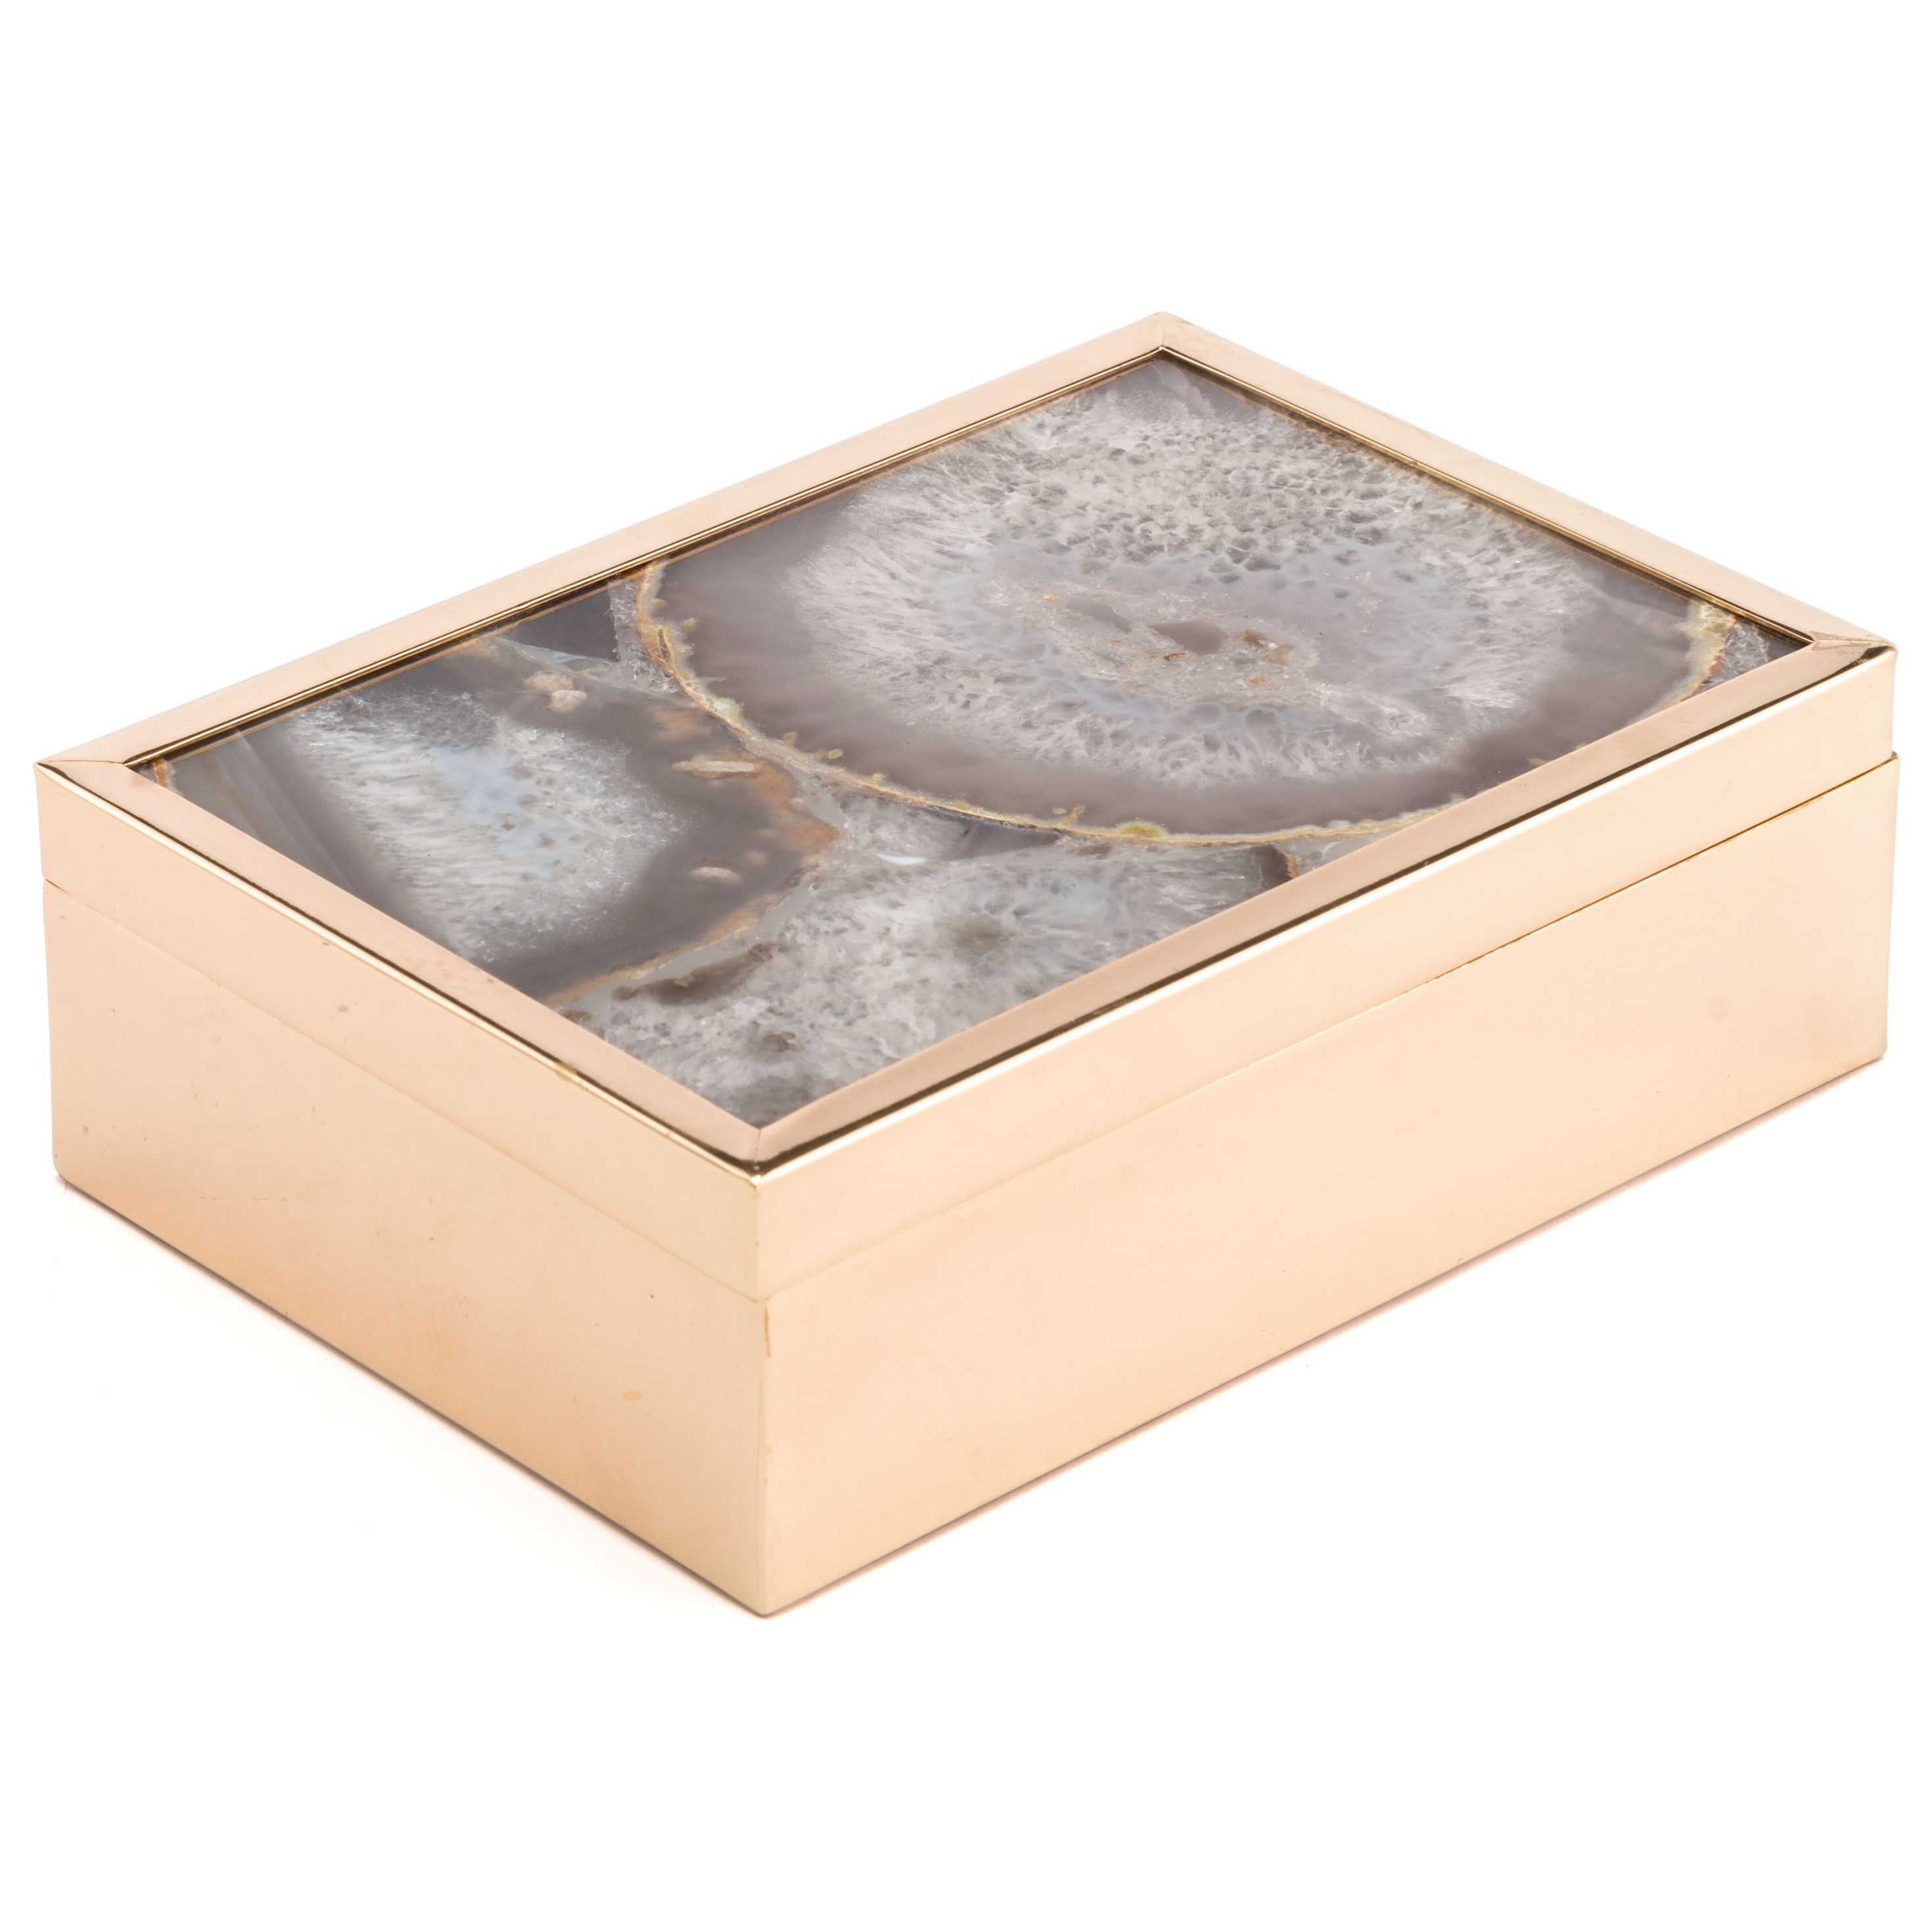 Zuo Boxes, Bowls and Trays White Stone Box Large - Item Number: A10930